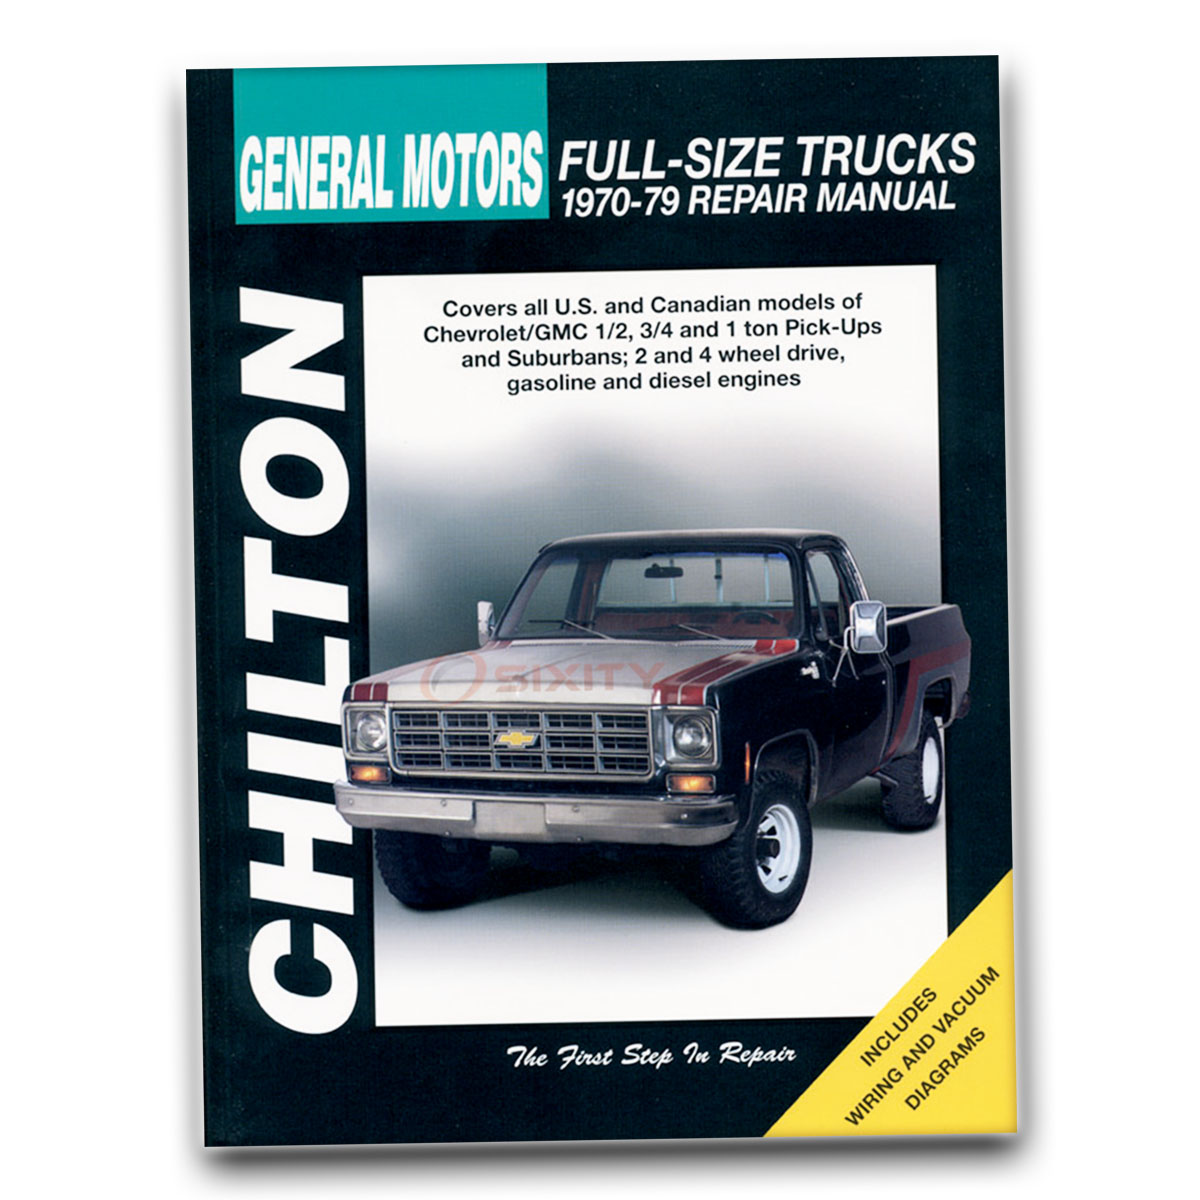 Chilton Repair Manual for Chevy K10 Custom Deluxe Cheyenne Silverado ef